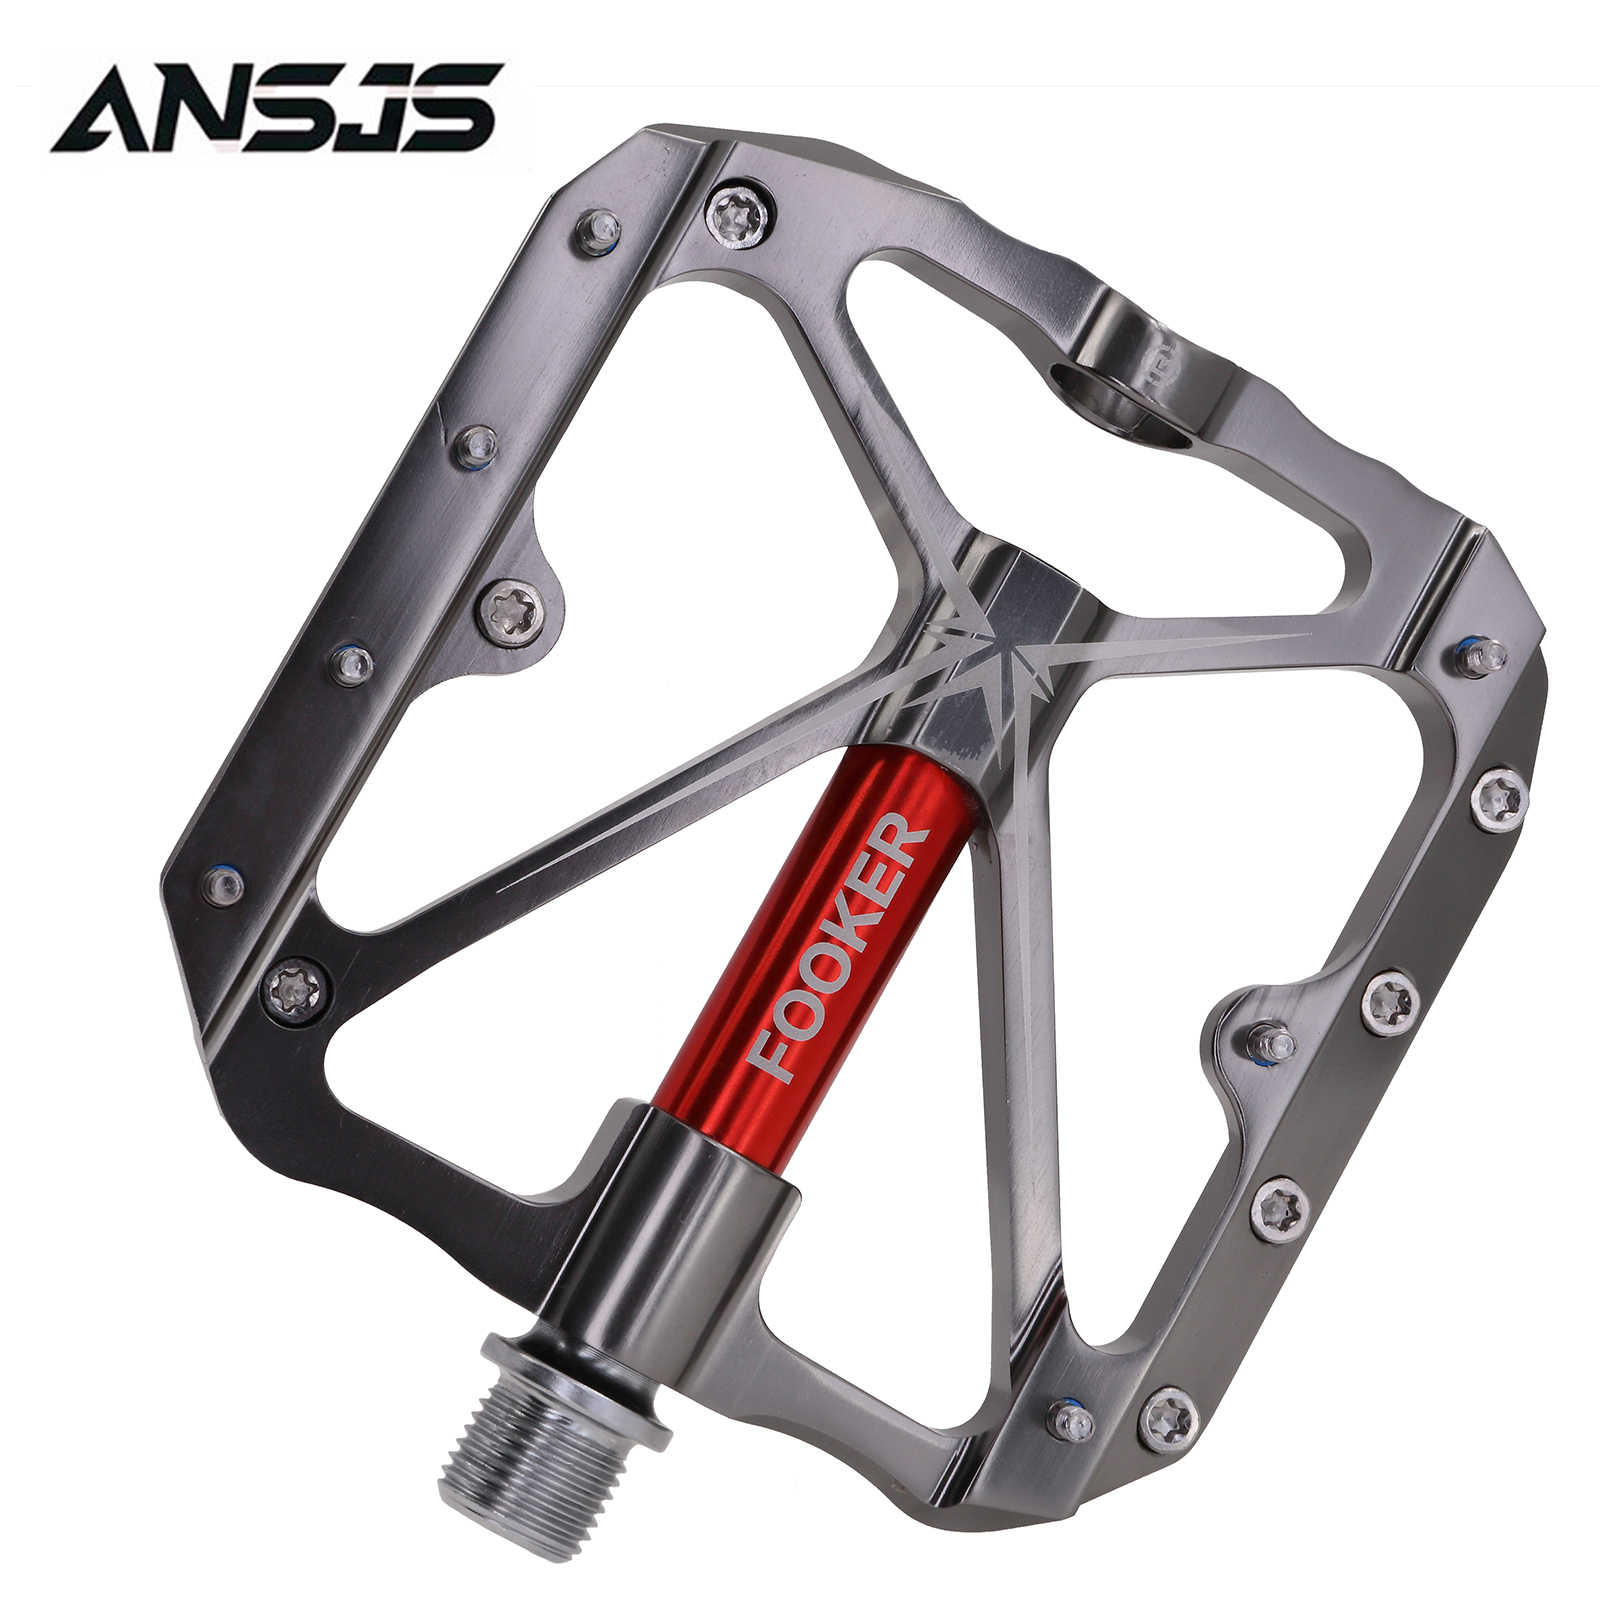 FOOKER Mountain Bike Pedals Non-Slip Bike Pedals Platform Bicycle Flat Alloy Pedals 9//16 Needle Roller Bearing